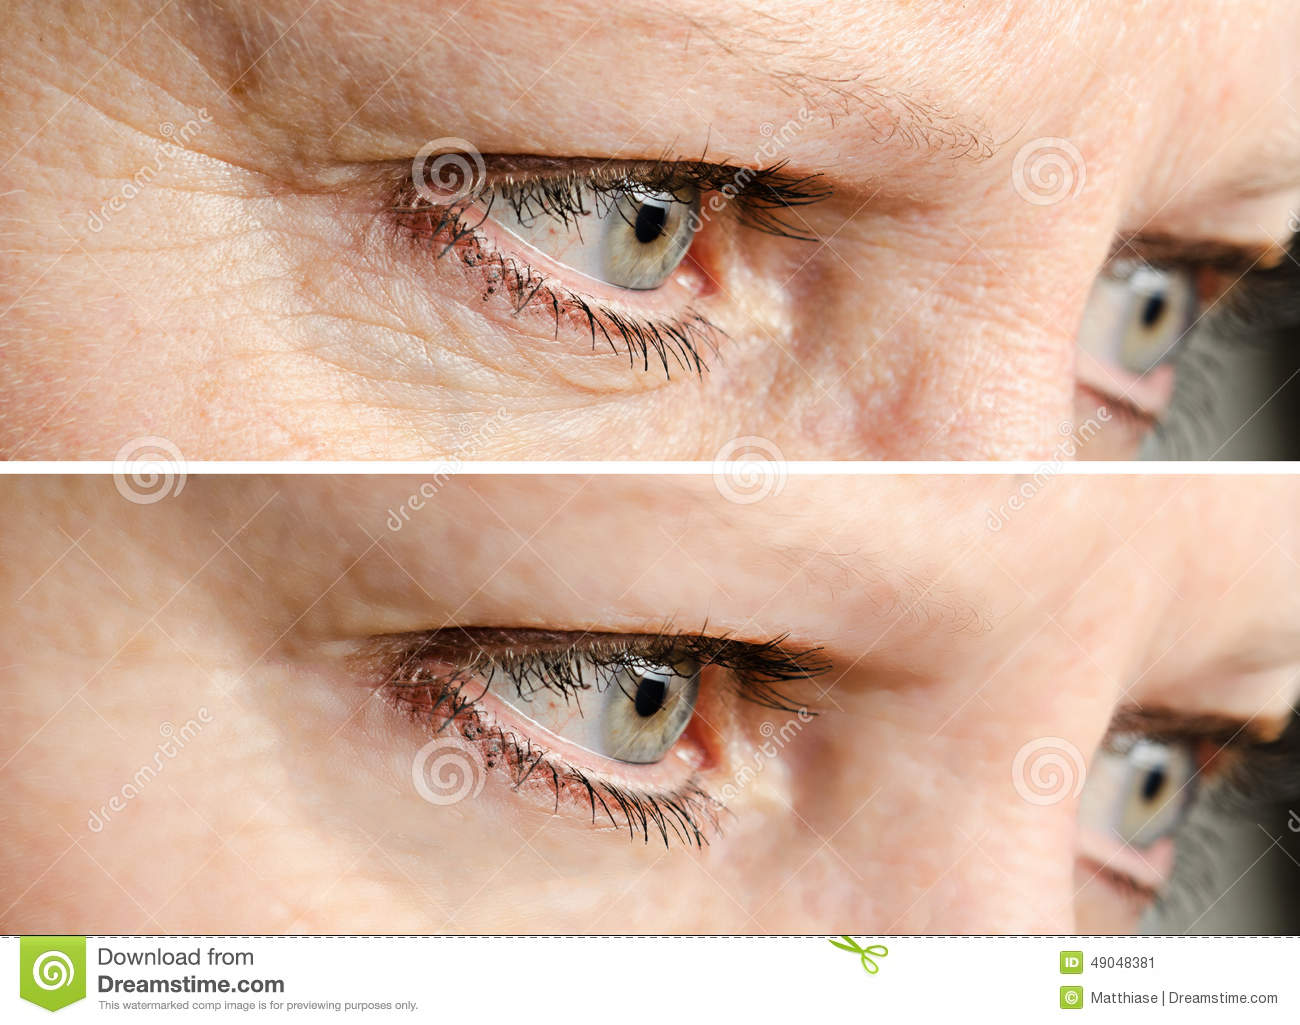 how to clear wrinkles on face